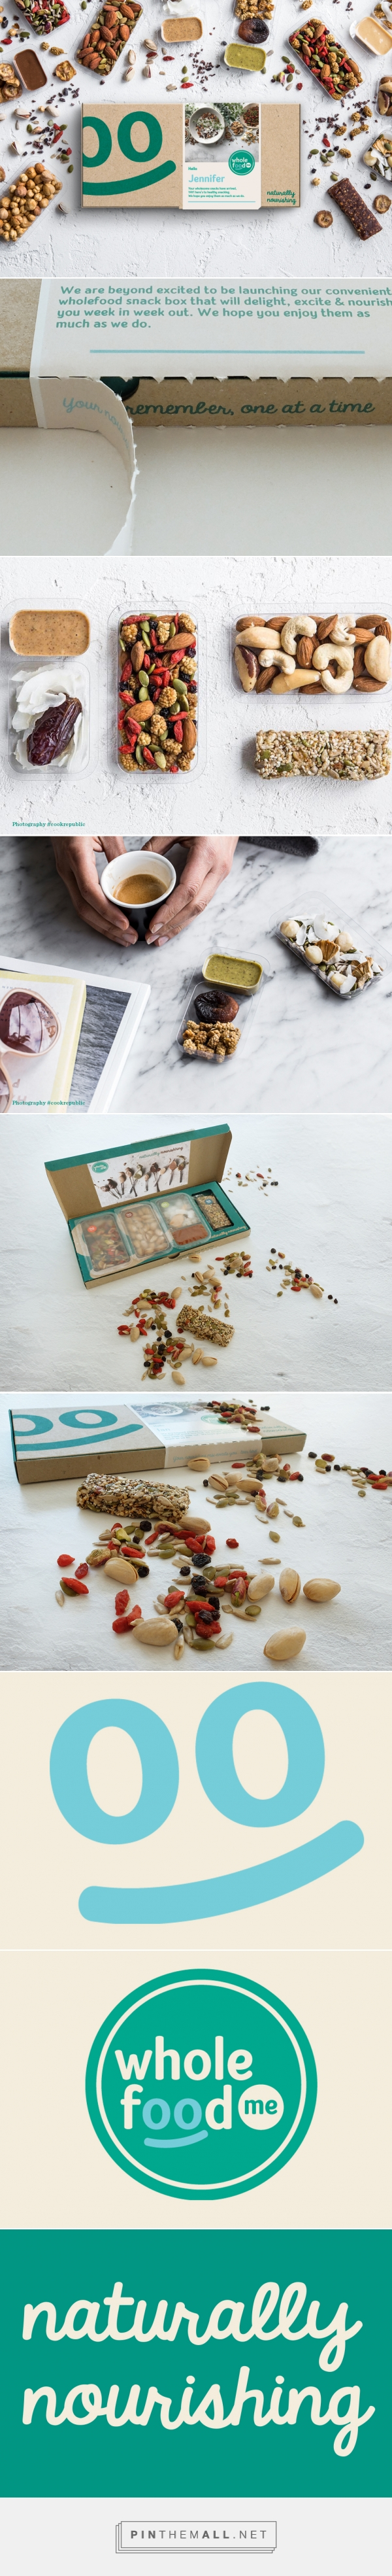 wholefood.me - Packaging of the World - Creative Package Design Gallery - http://www.packagingoftheworld.com/2017/08/wholefoodme.html